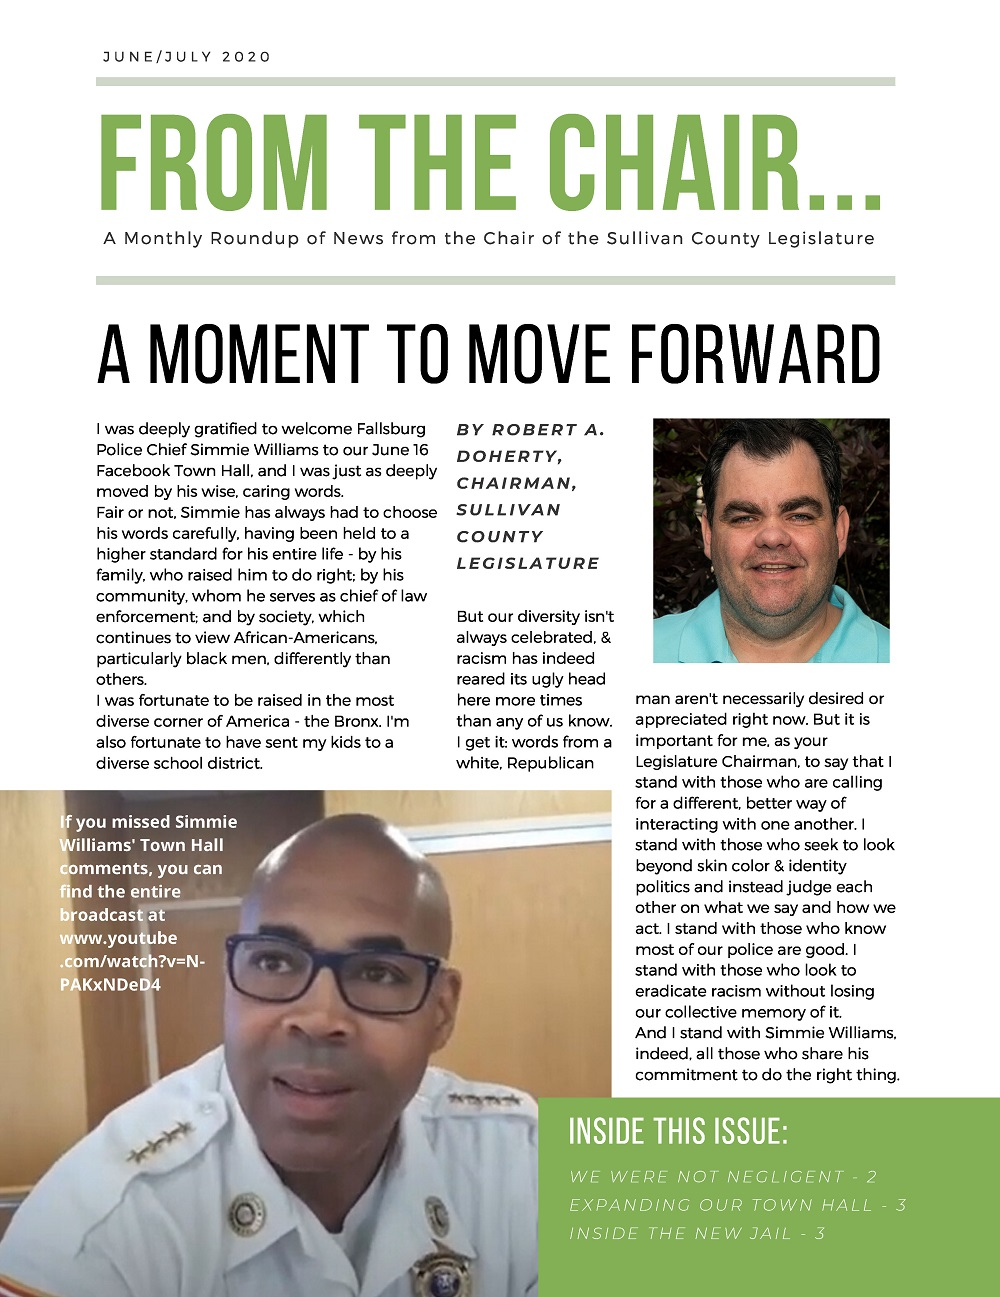 From the Chair Newsletter, June/July 2020